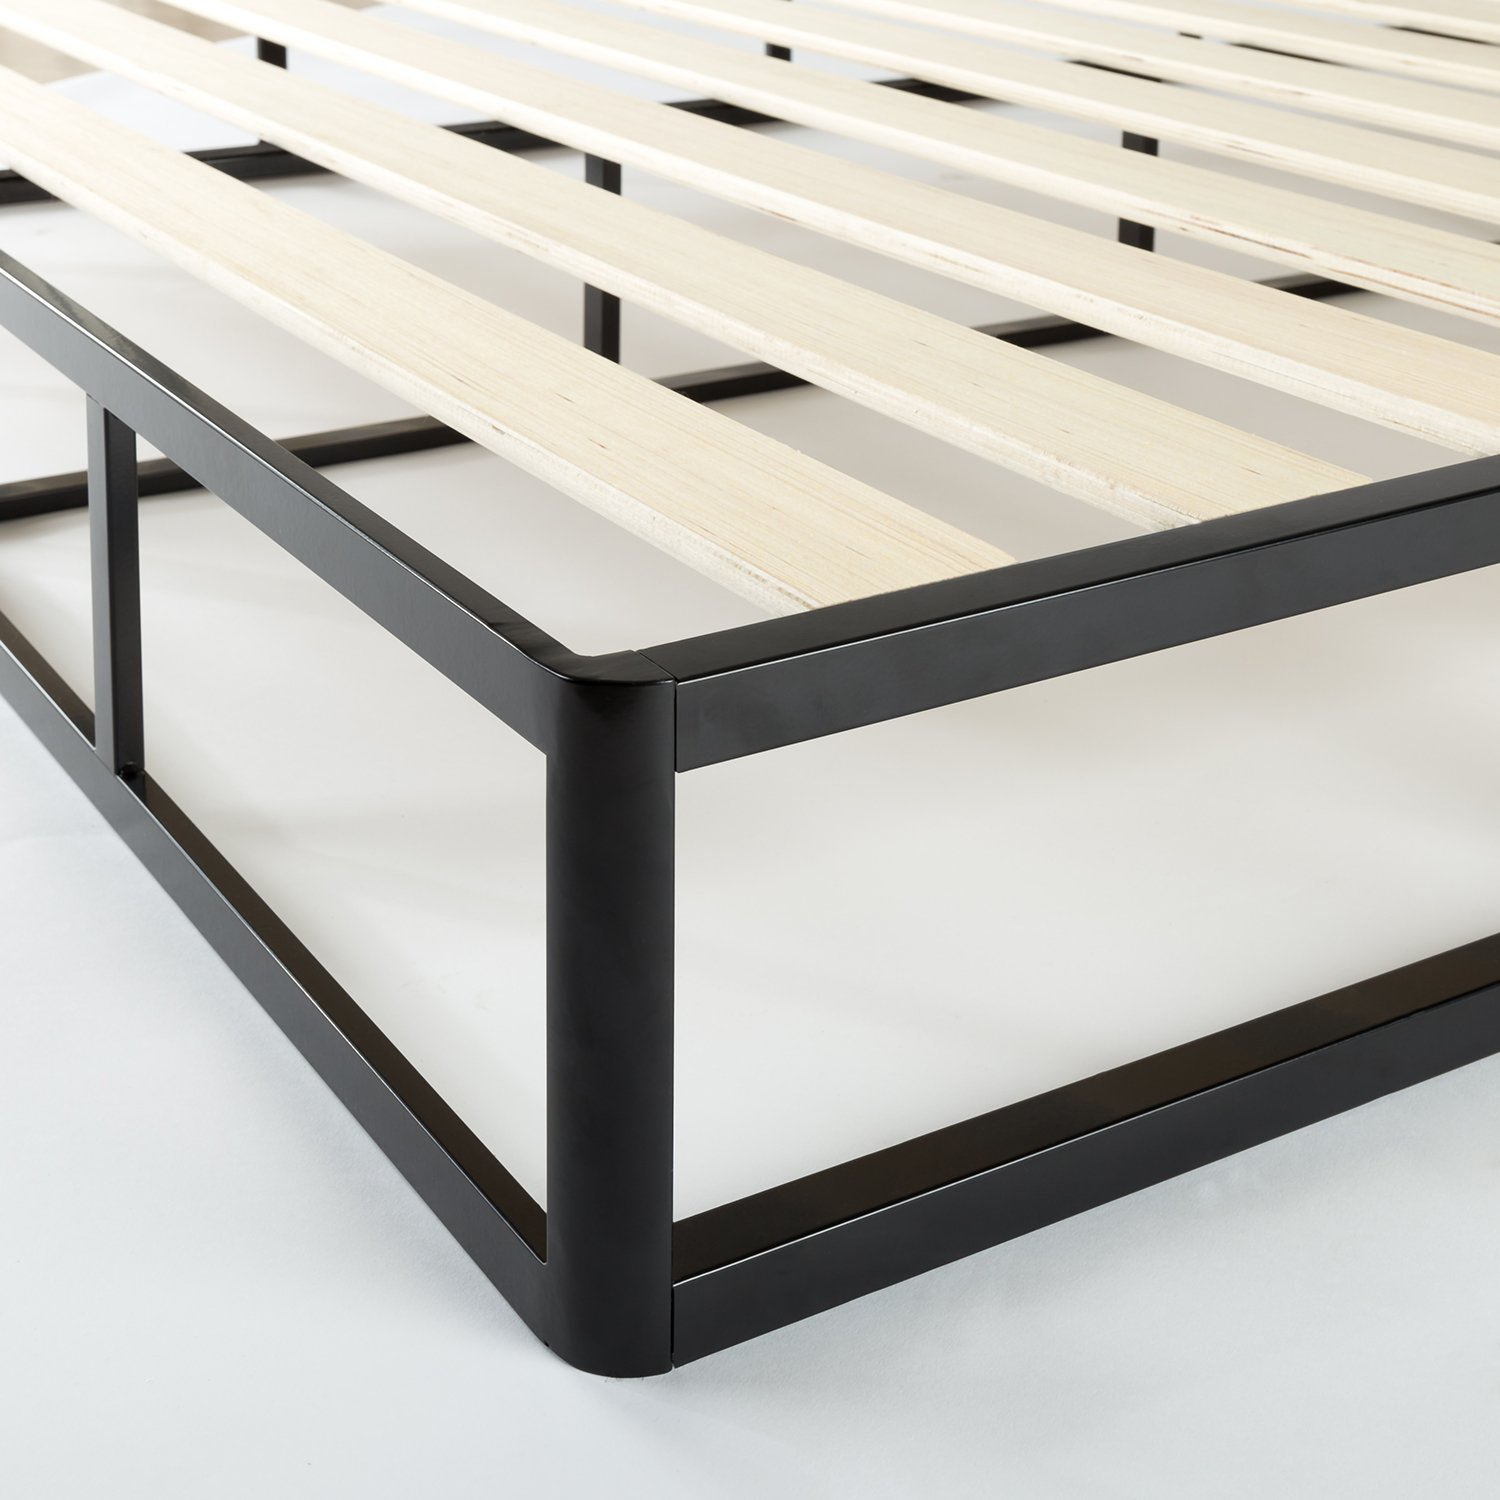 Zinus 7.5 Inch Standard Profile Metal Smart Box Spring/Mattress Foundation/Wood Slat Support/Easy Assembly, Twin XL by Zinus (Image #5)